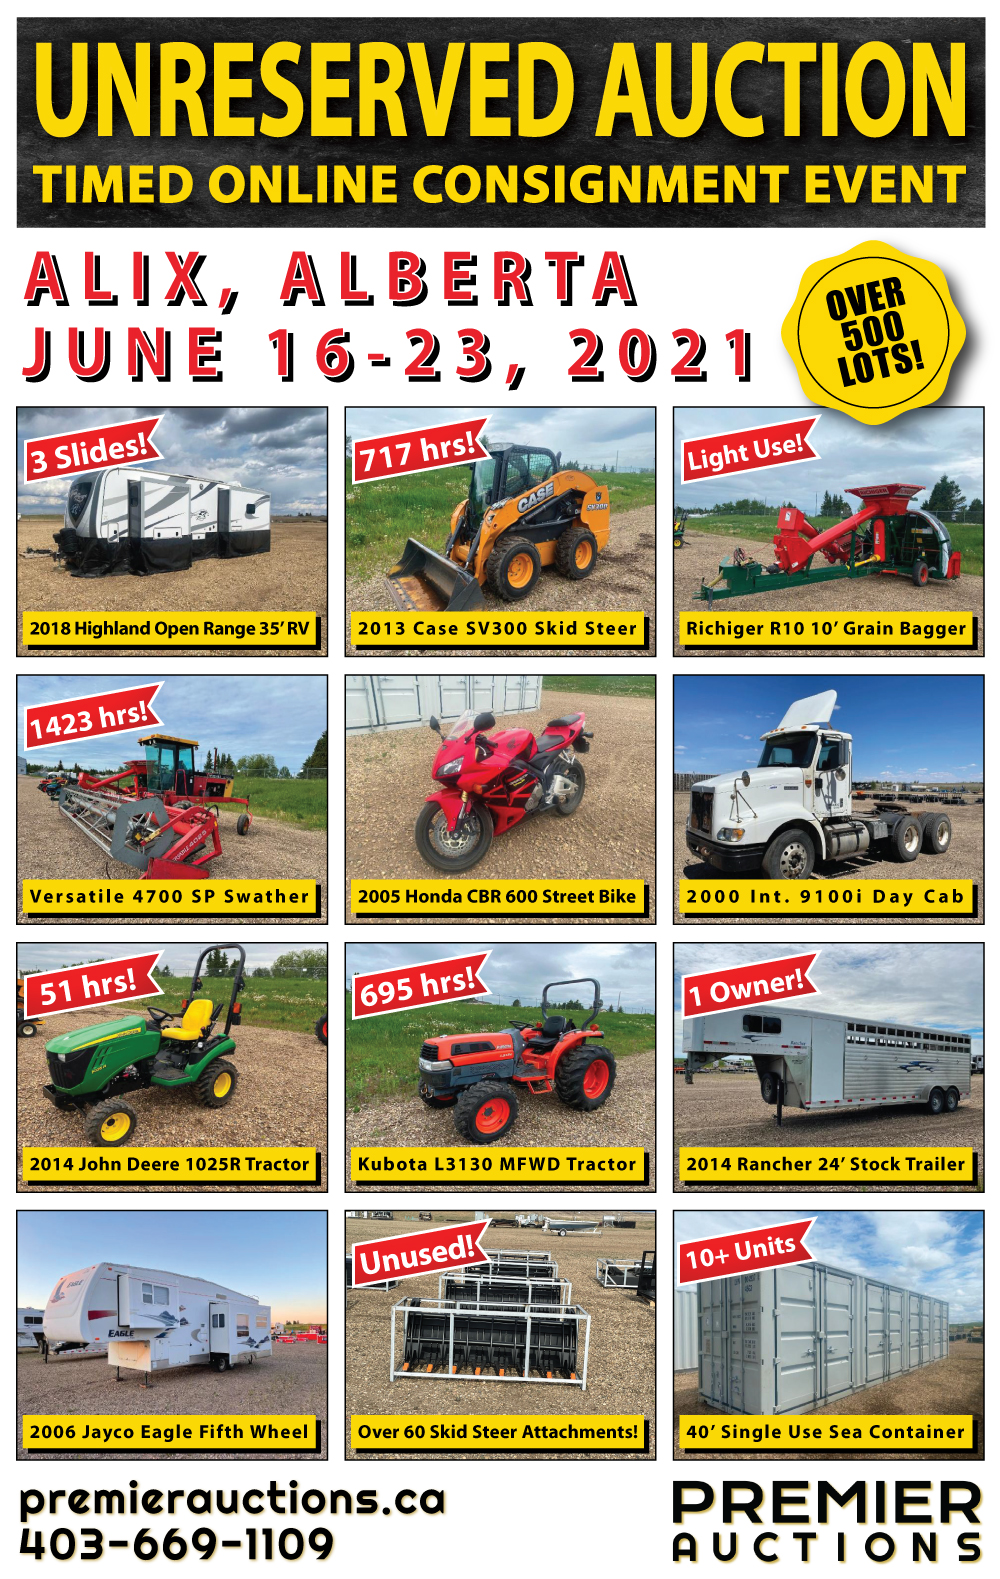 Unreserved Consignment Auction